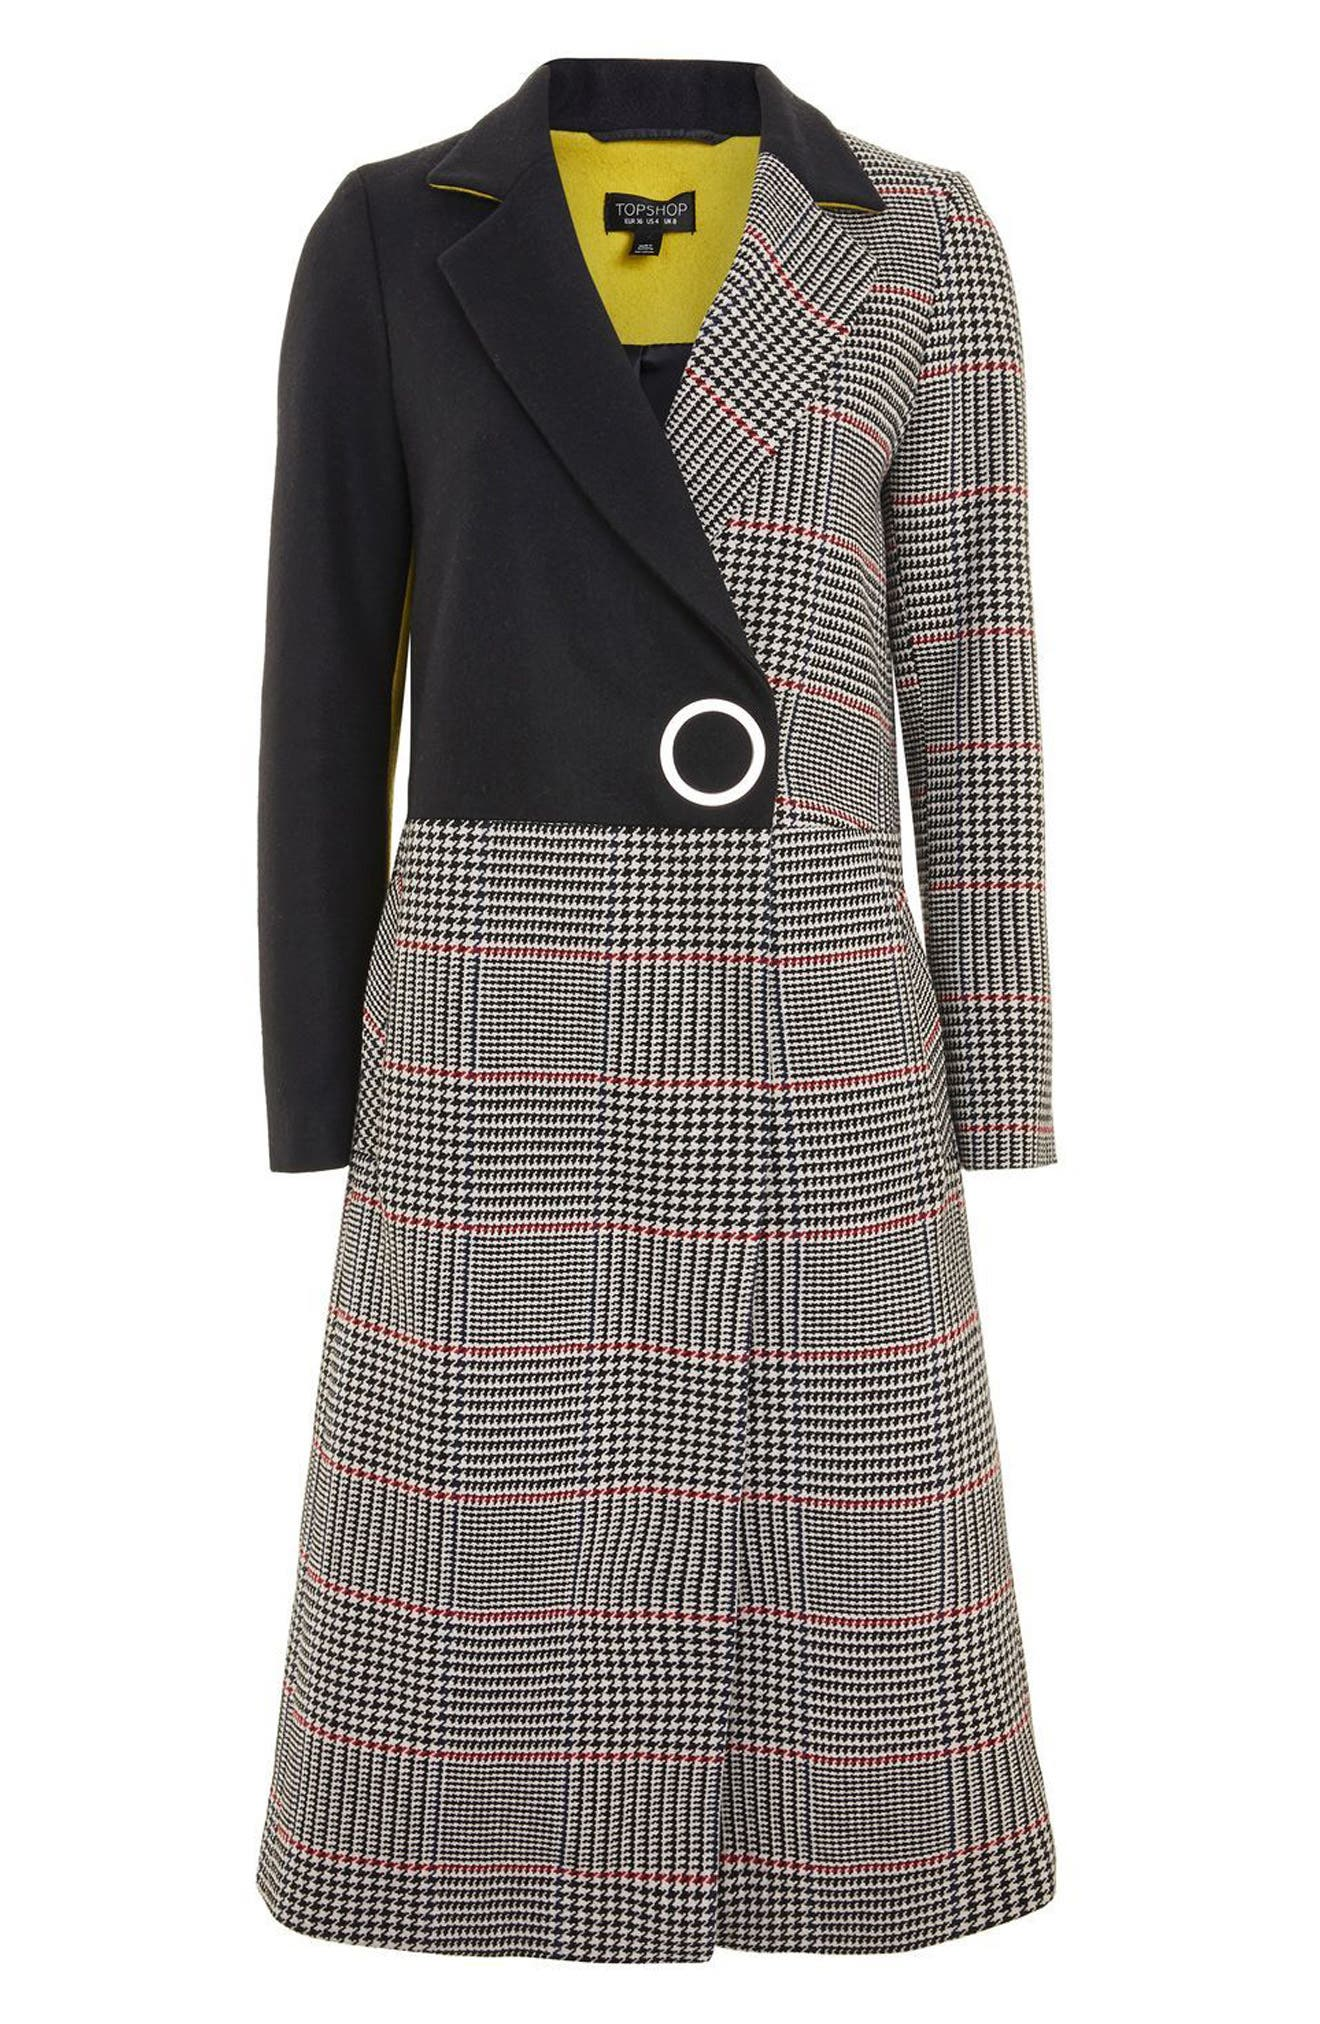 Colorblock Check Wool Blend Coat,                             Alternate thumbnail 4, color,                             410